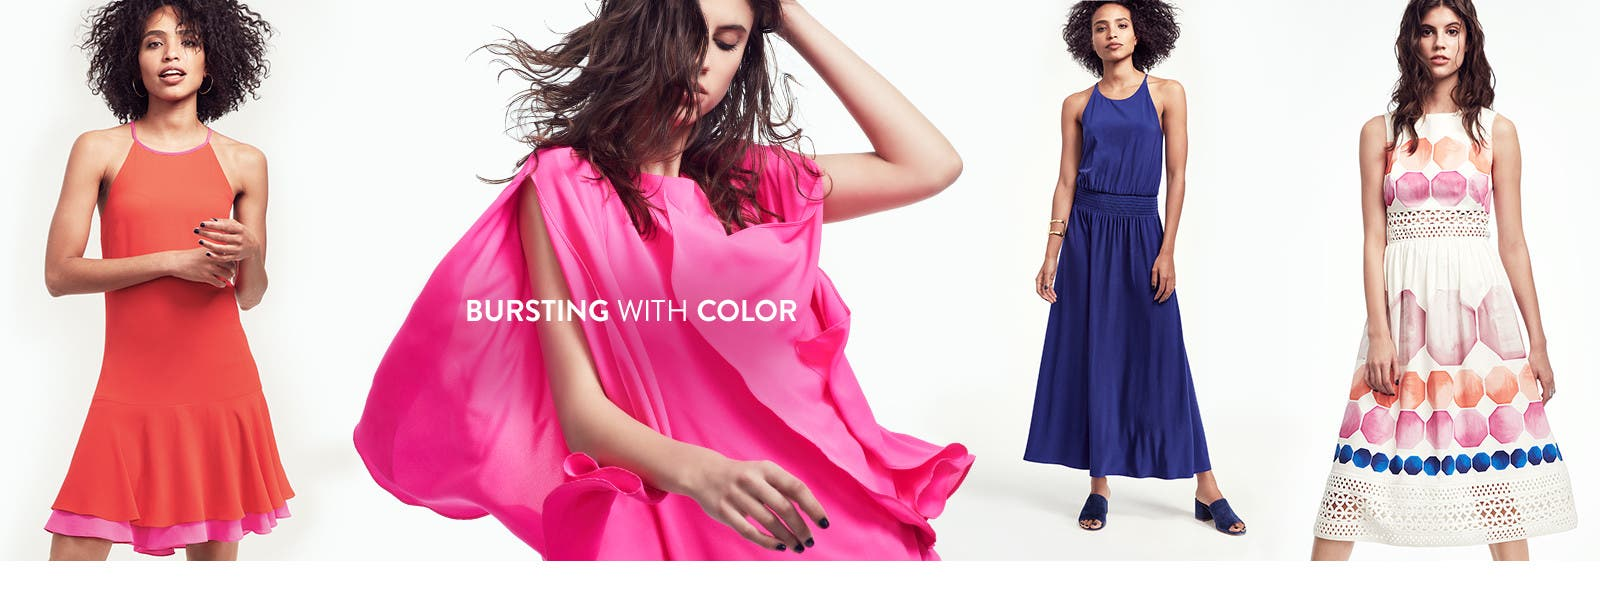 Bursting with color: dresses.